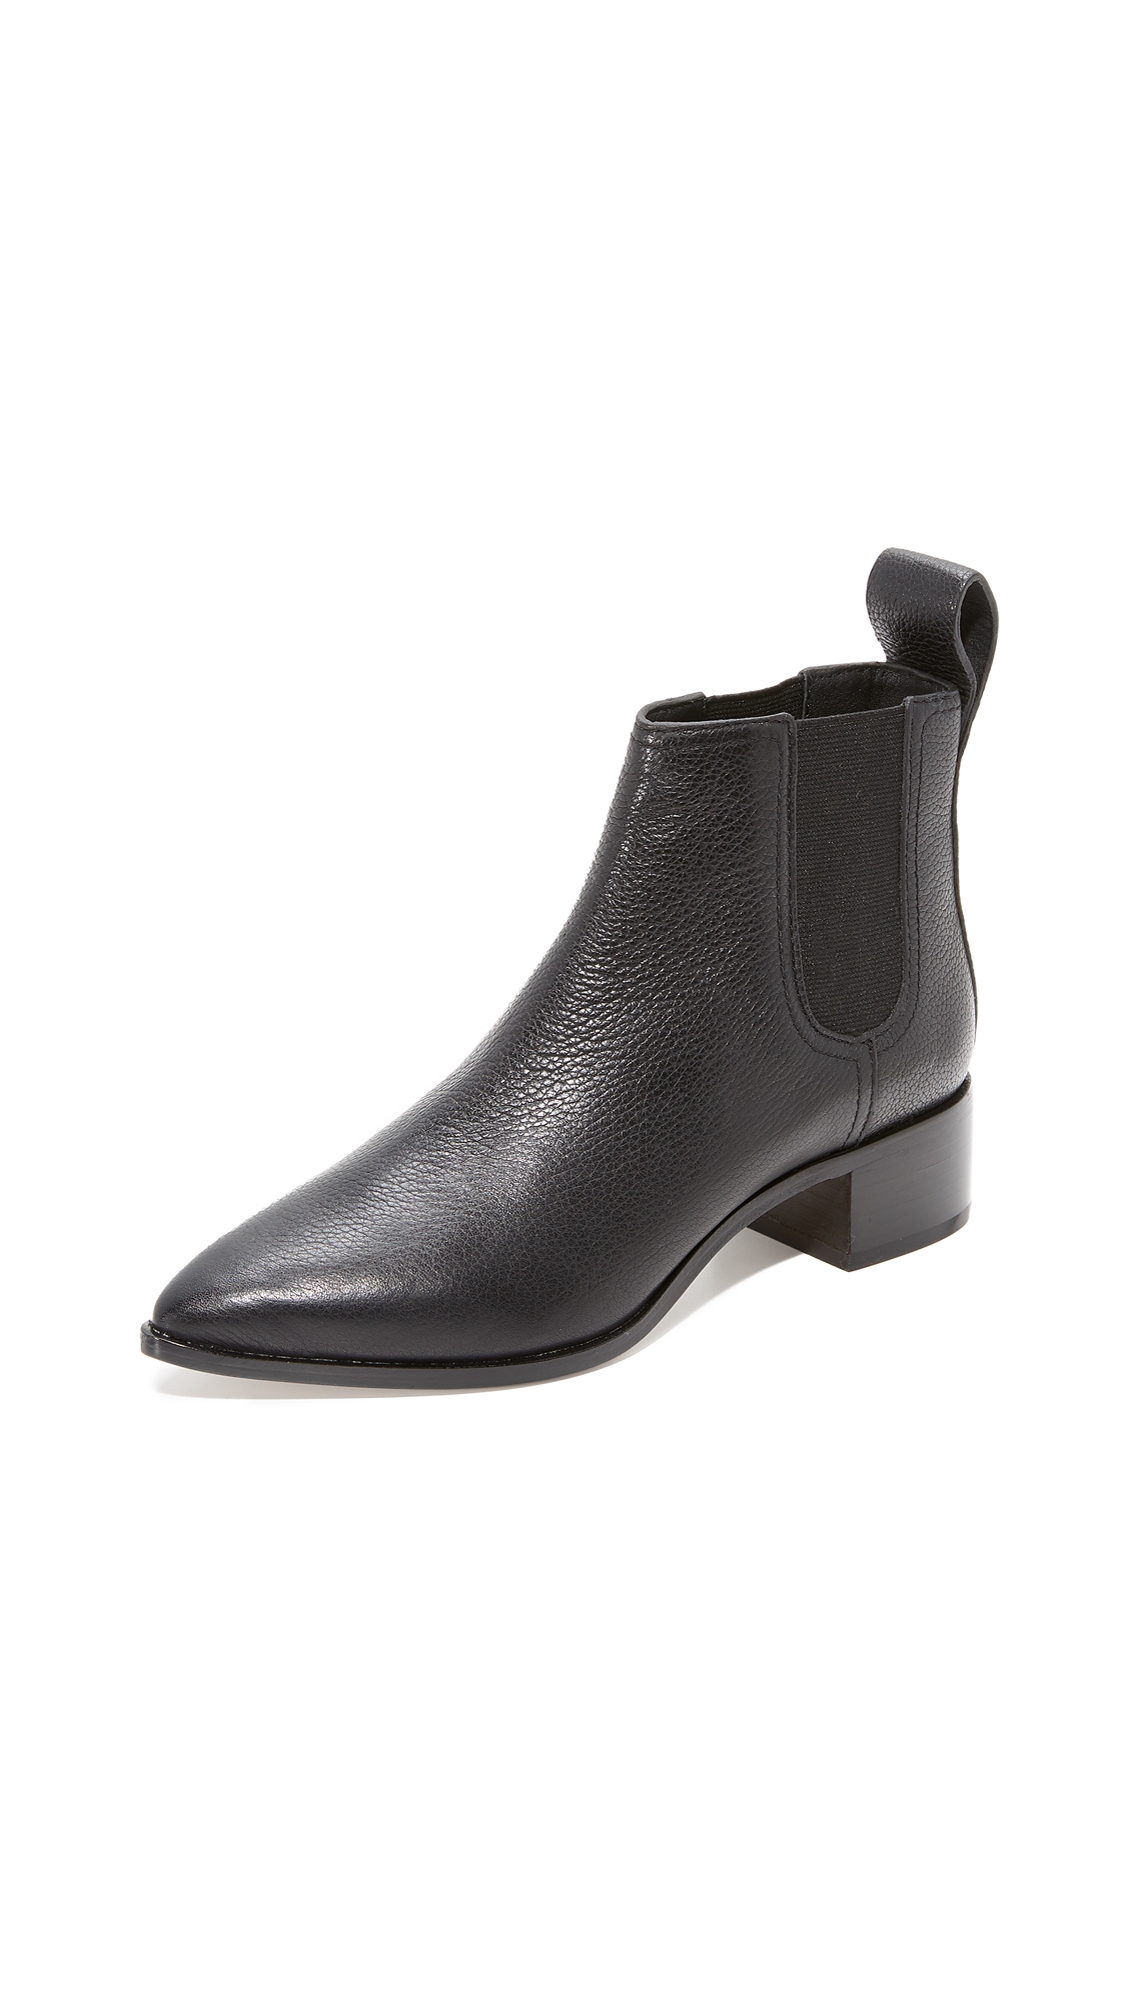 Loeffler Randall Nellie Pointed Toe Chelsea Booties - Black